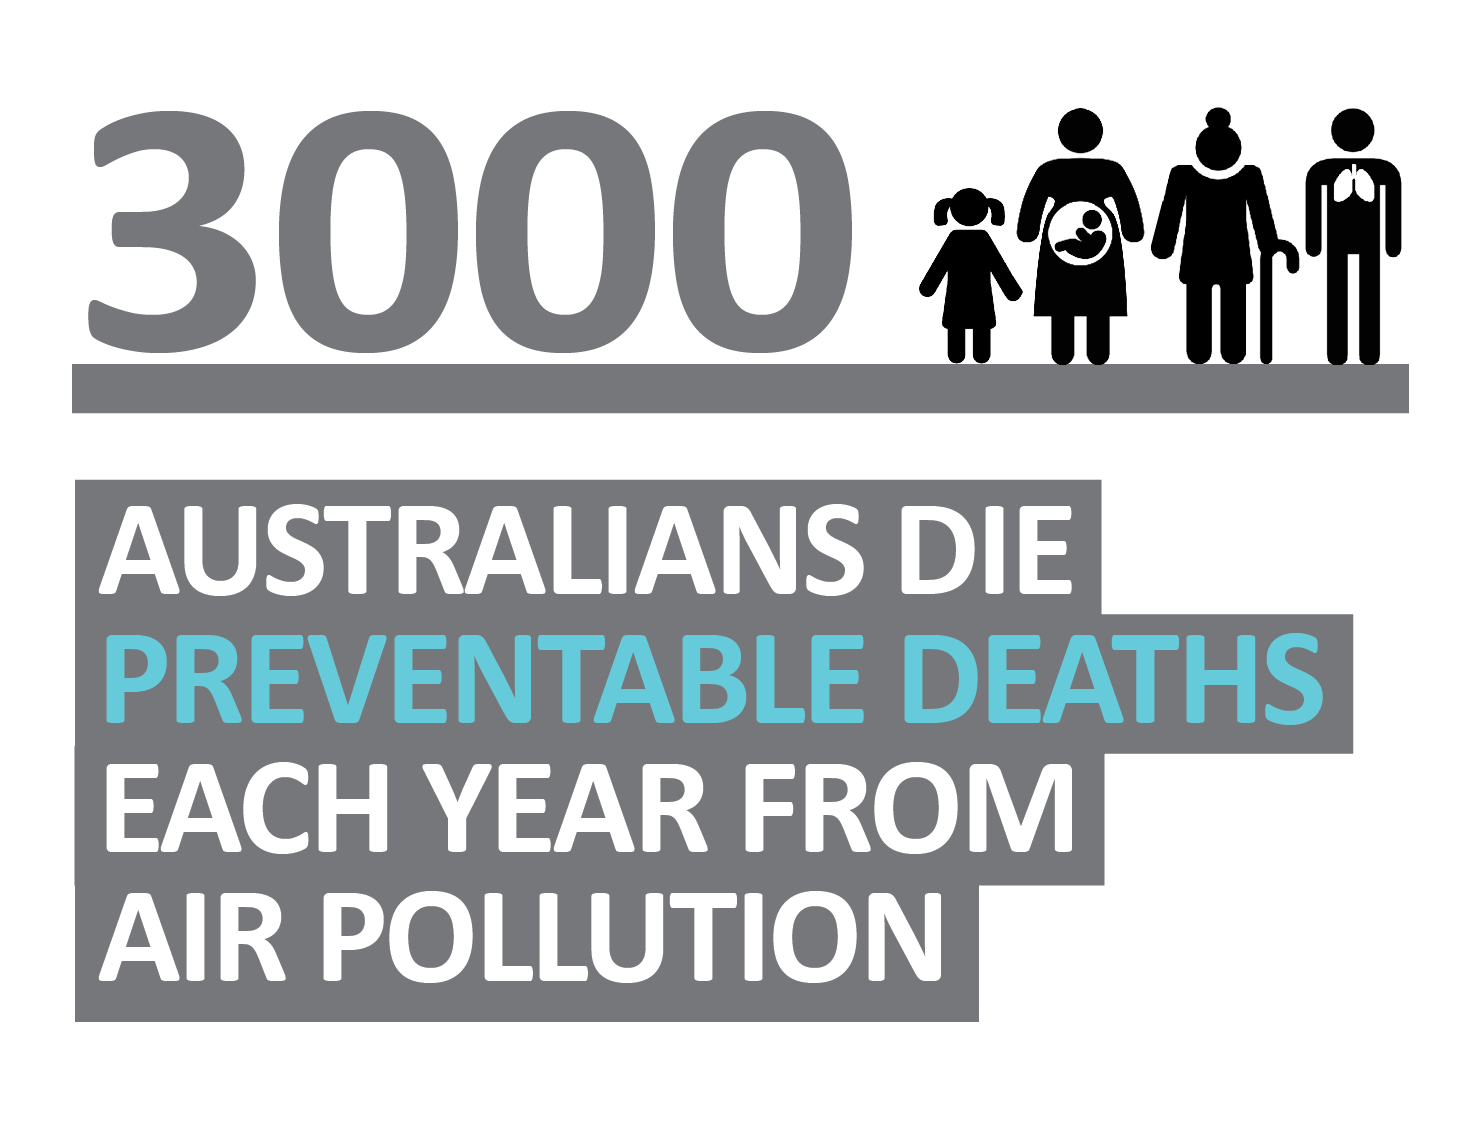 3000 Australians die preventable deaths each year due to air pollution